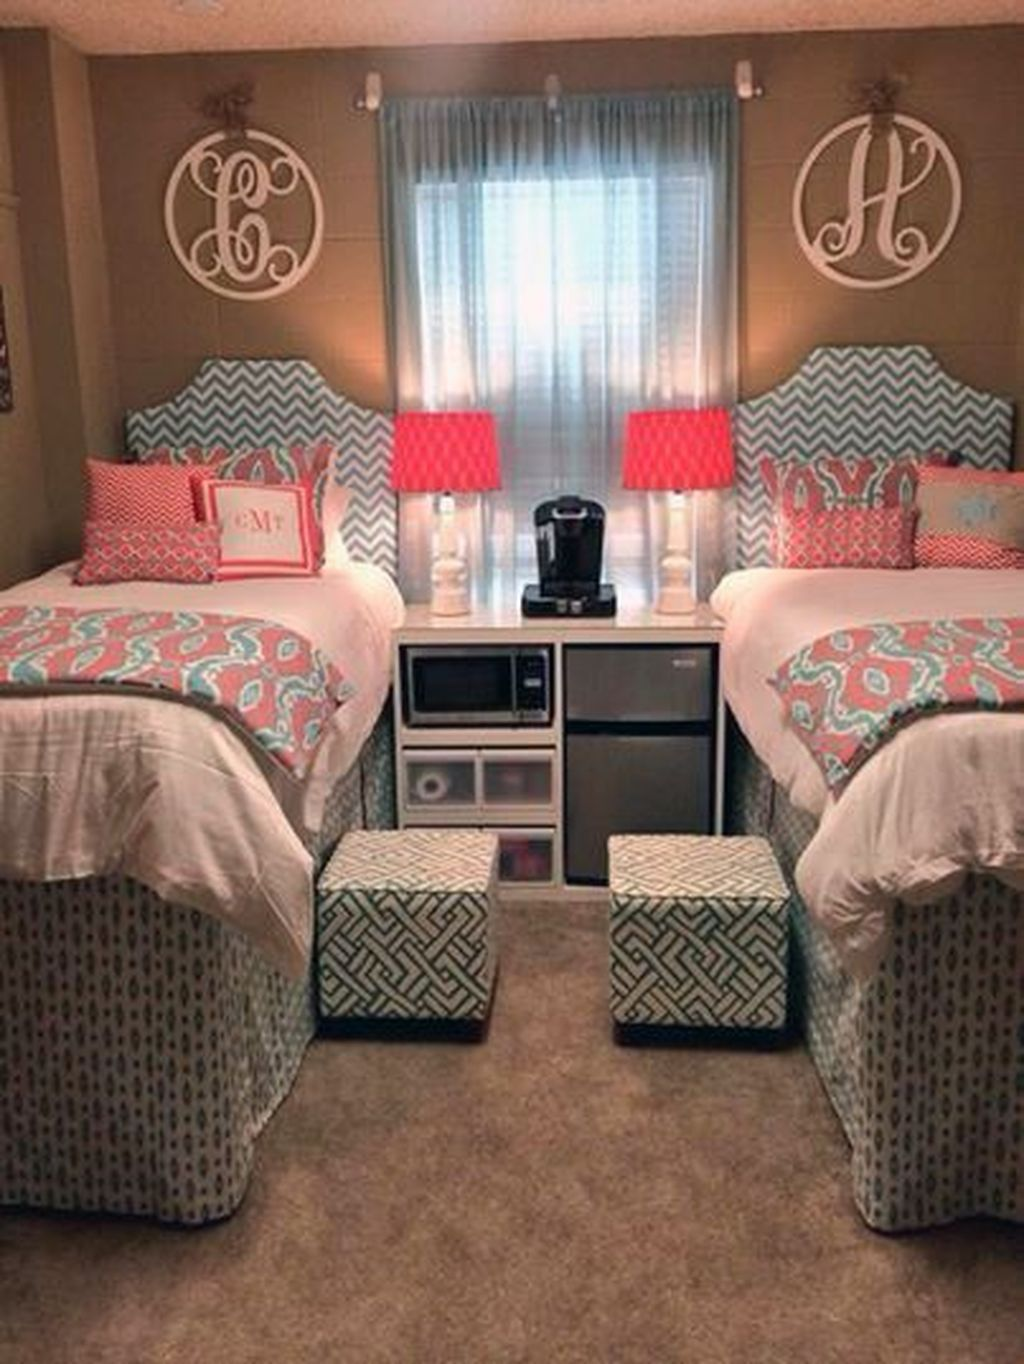 Cute dorm room decorating ideas on a budget20 dorm room - Cute girl room ideas ...